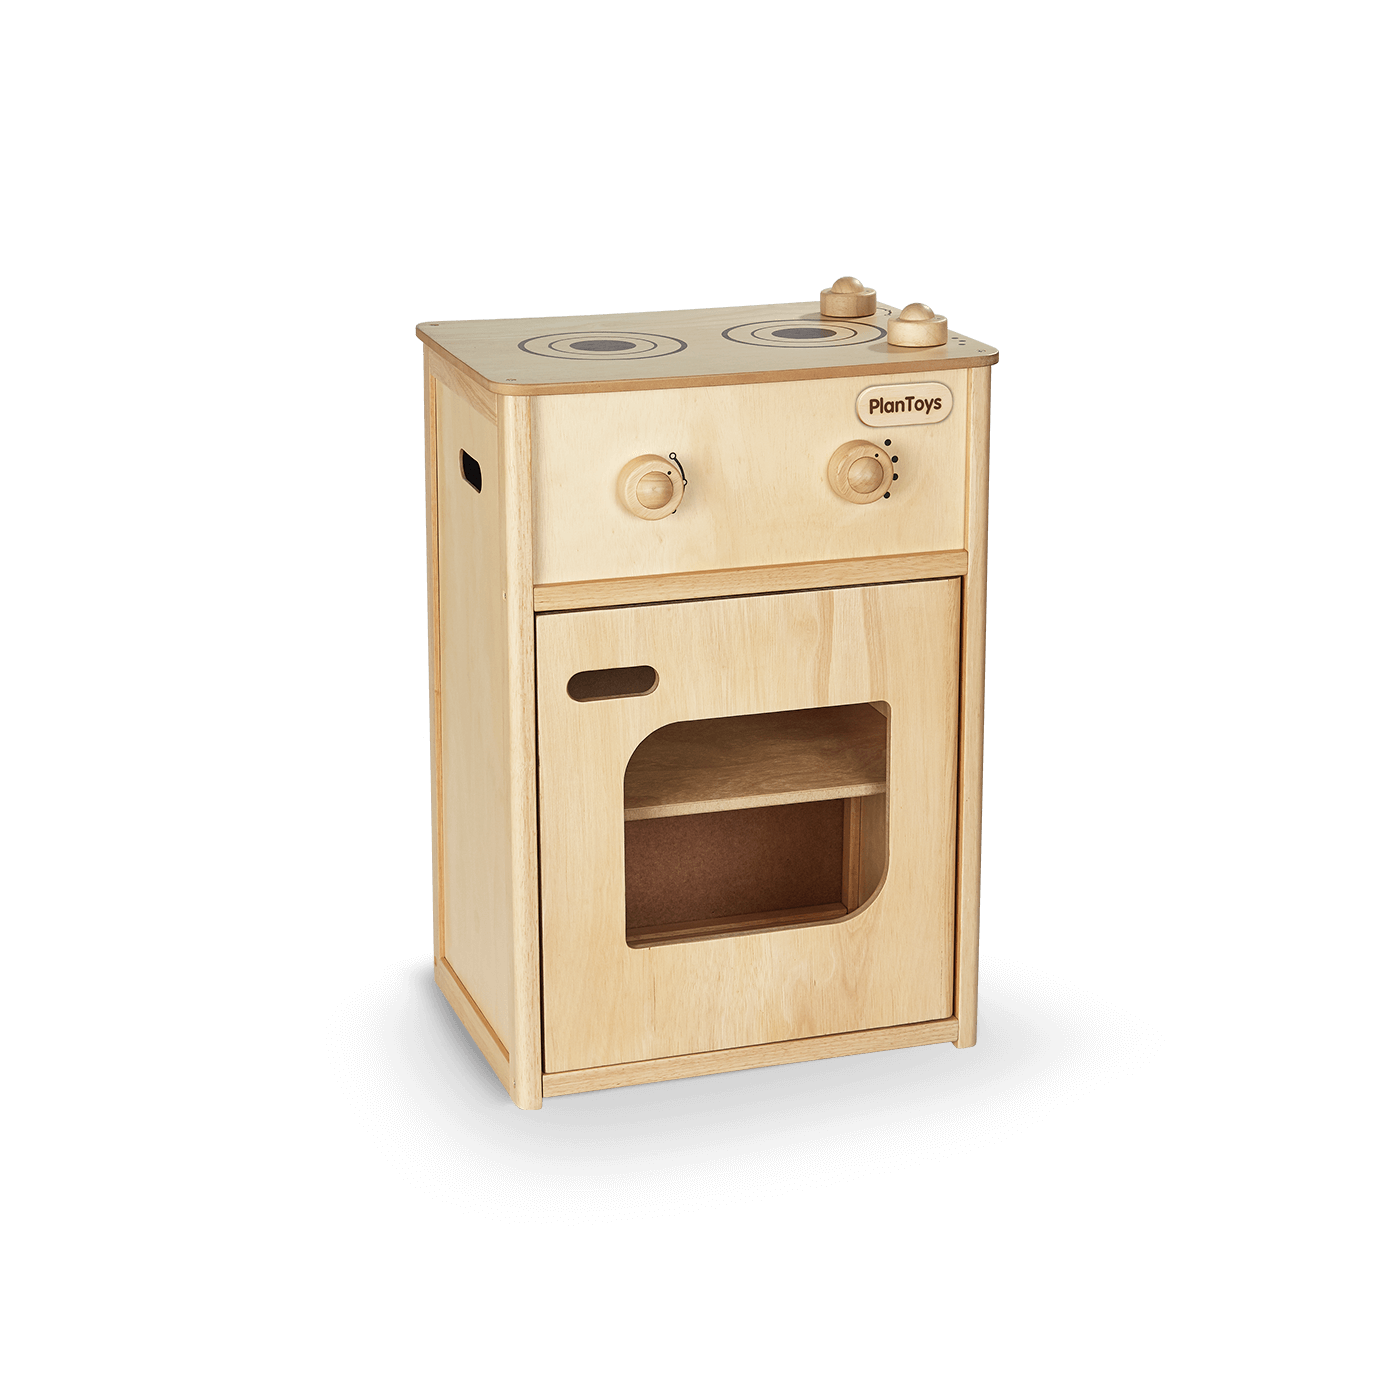 3619_PlanToys_KITCHEN_STOVE_Pretend_Play_Imagination_Creative_Language_and_Communications_Social_Coordination_3yrs_Wooden_toys_Education_toys_Safety_Toys_Non-toxic_0.png